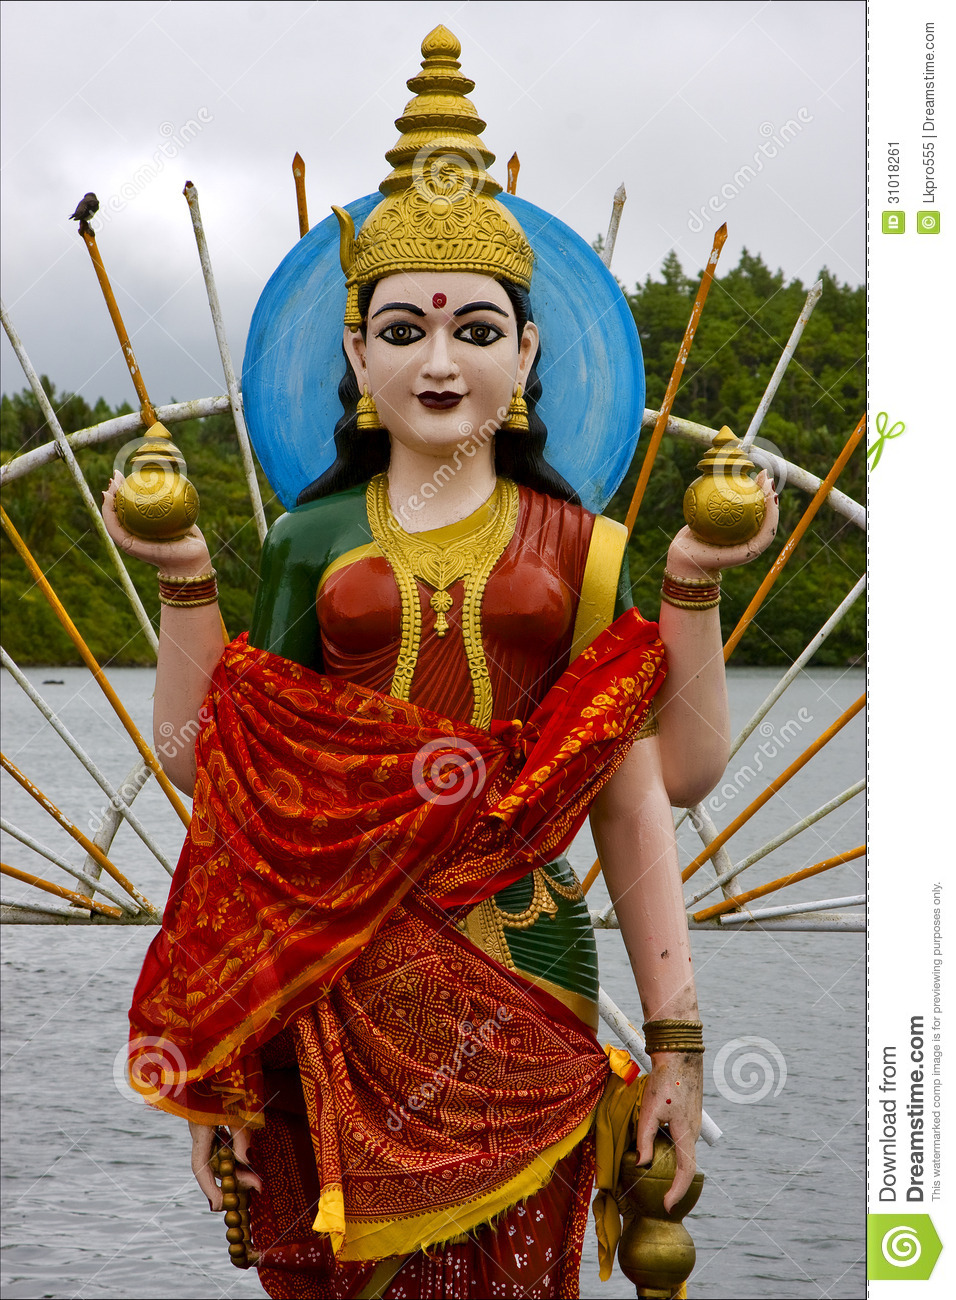 wood lake hindu single women We bring you the first in a three-part series on the temples of kerala - kerala temples: 11 famous hindu temples in god's own country.